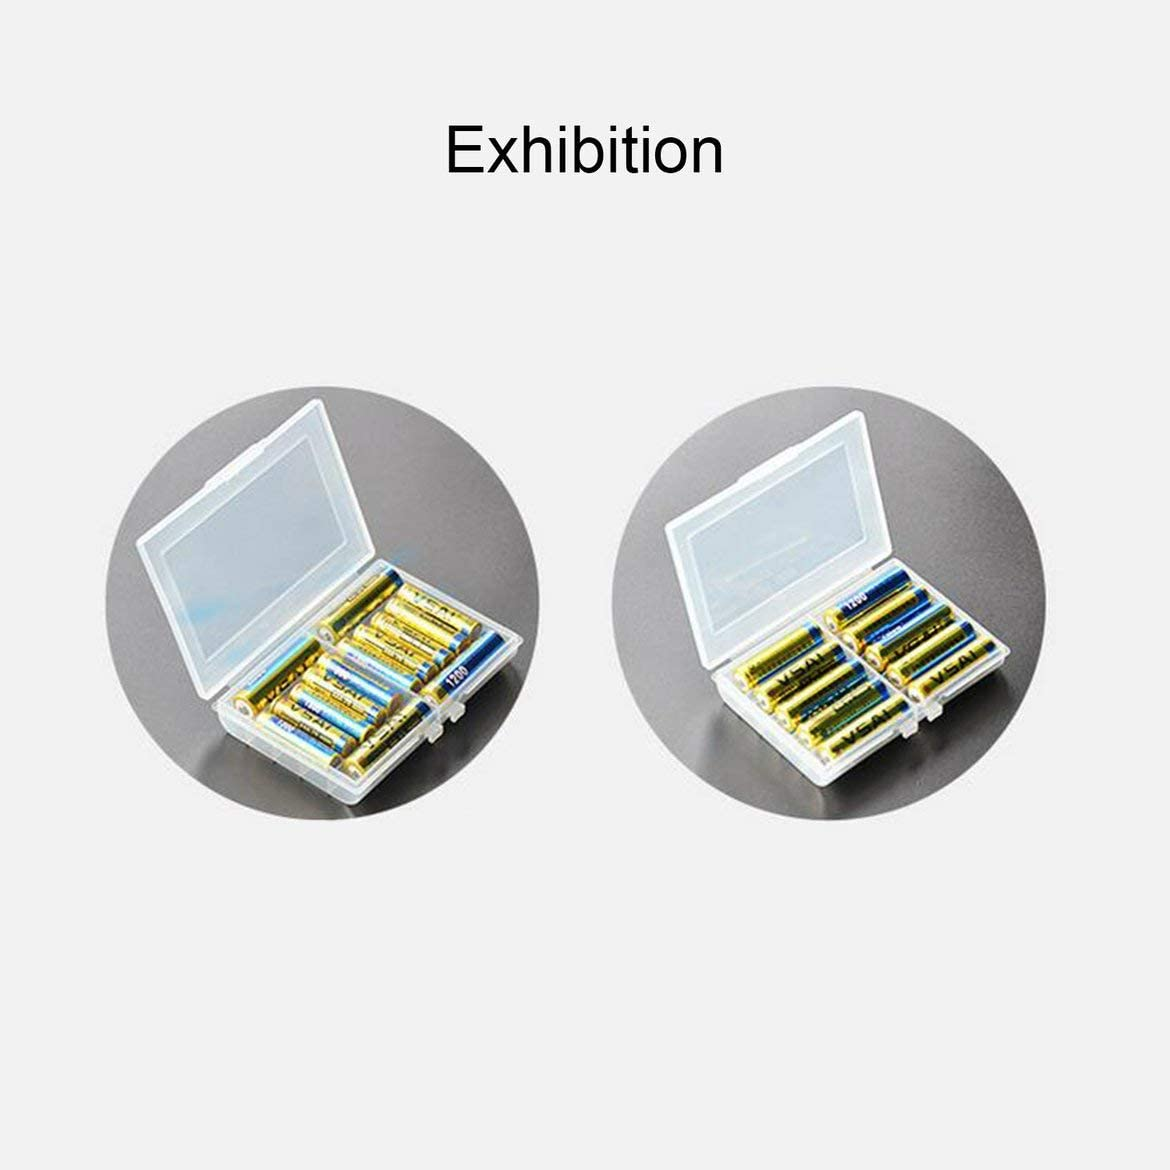 Pandamama 1 Pcs Battery Holder Case for Holding 10 AA AAA Batteries Hard Plastic Storage Box Cover for No.5//No.7 Battery Case